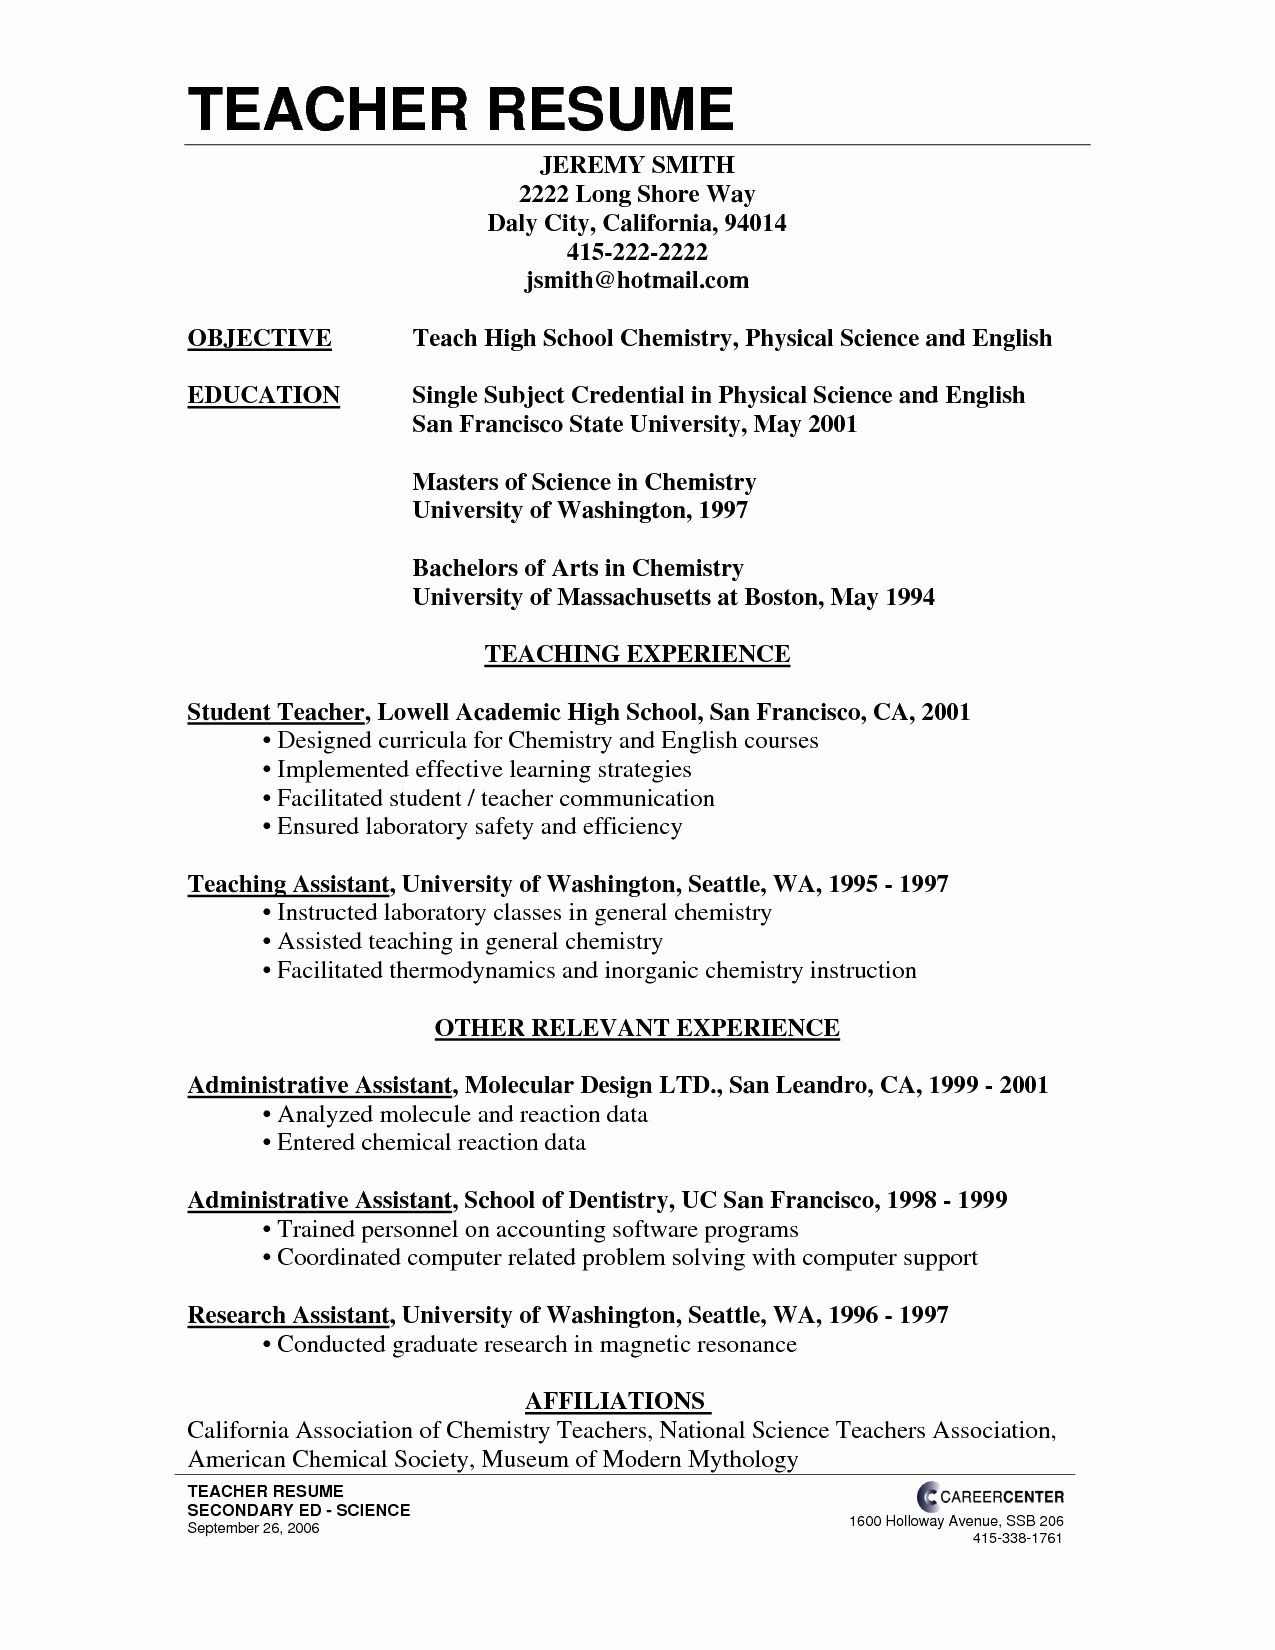 cover letter template accounting example-Resume Cover Letter Example New Free Cover Letter Templates Examples Best Od Specialist Sample 6-d